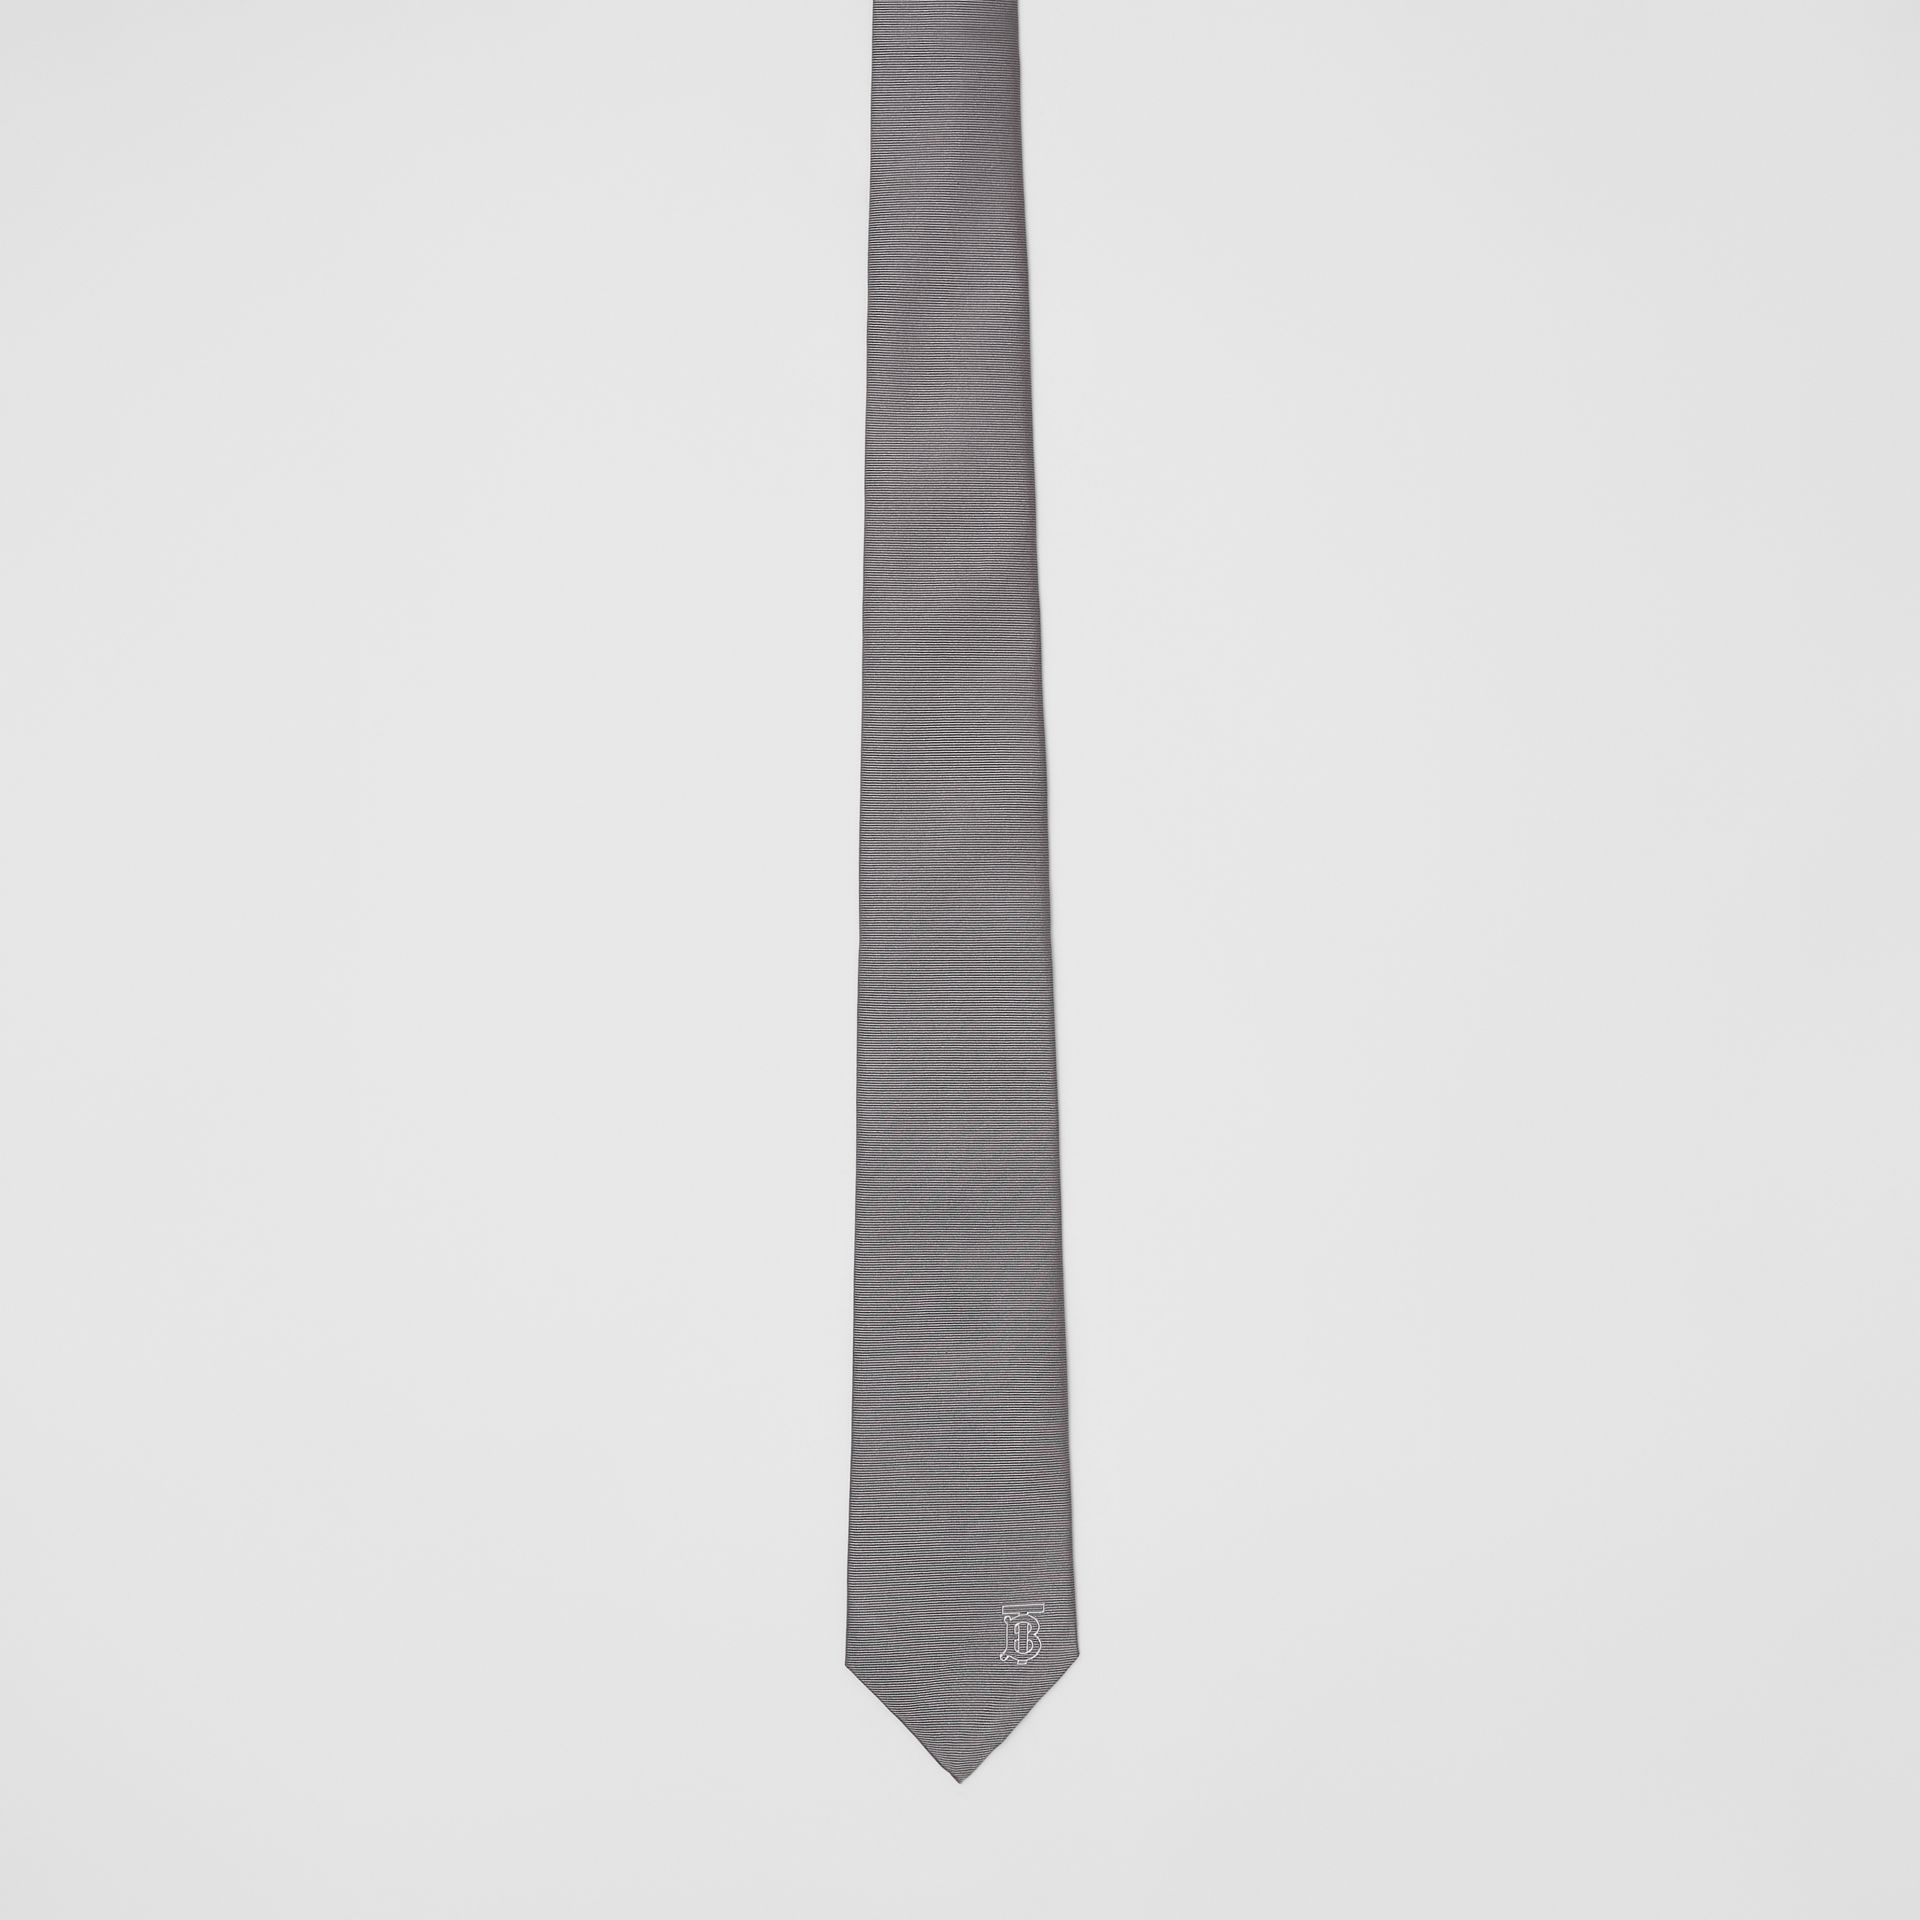 Classic Cut Monogram Motif Silk Tie in Mid Grey - Men | Burberry United Kingdom - gallery image 2